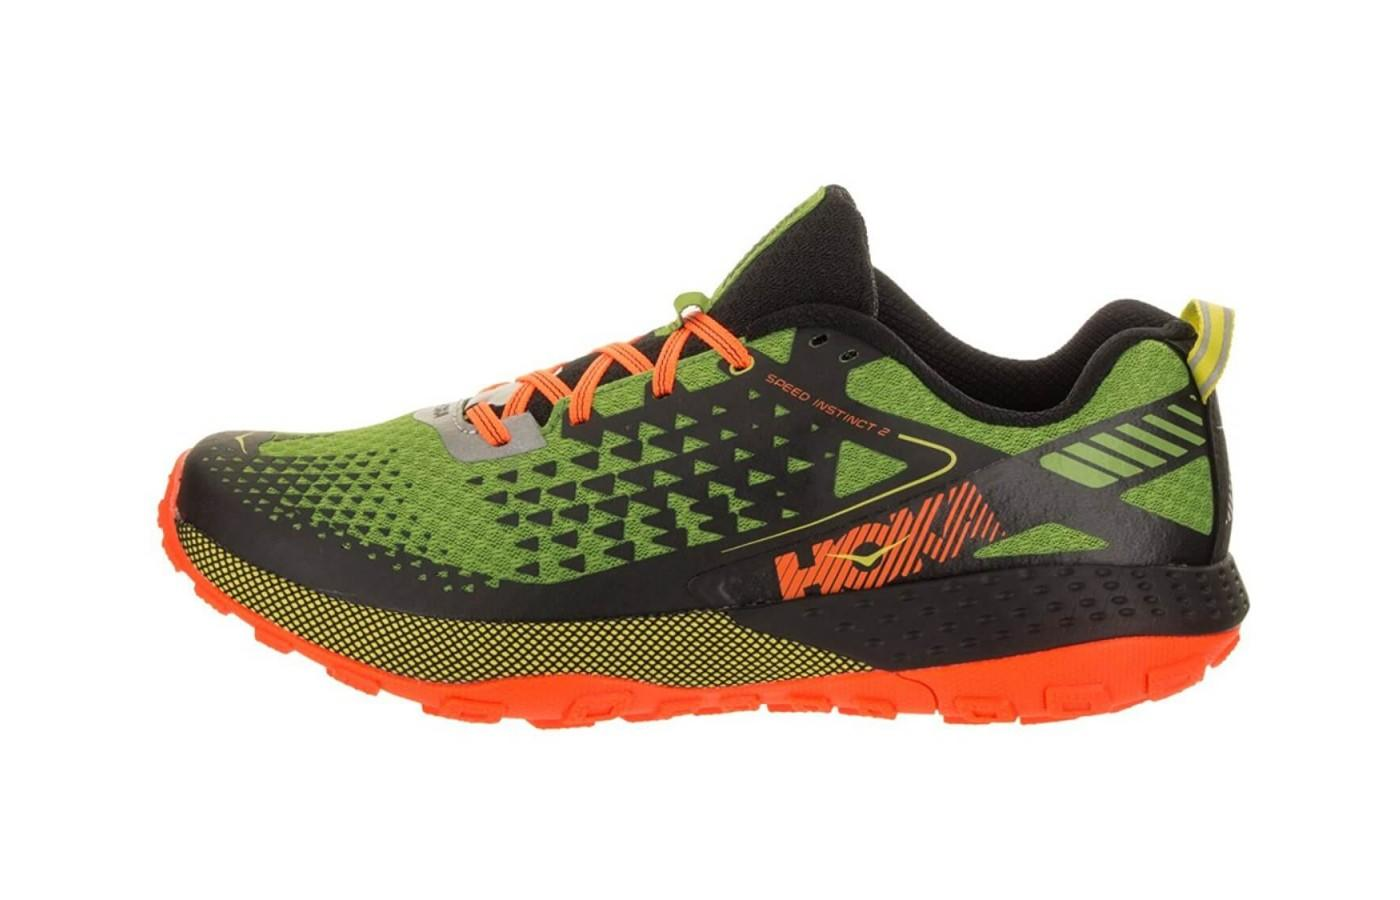 the Hoka One One Speed Instinct 2 is an aesthetically dynamic trail runner